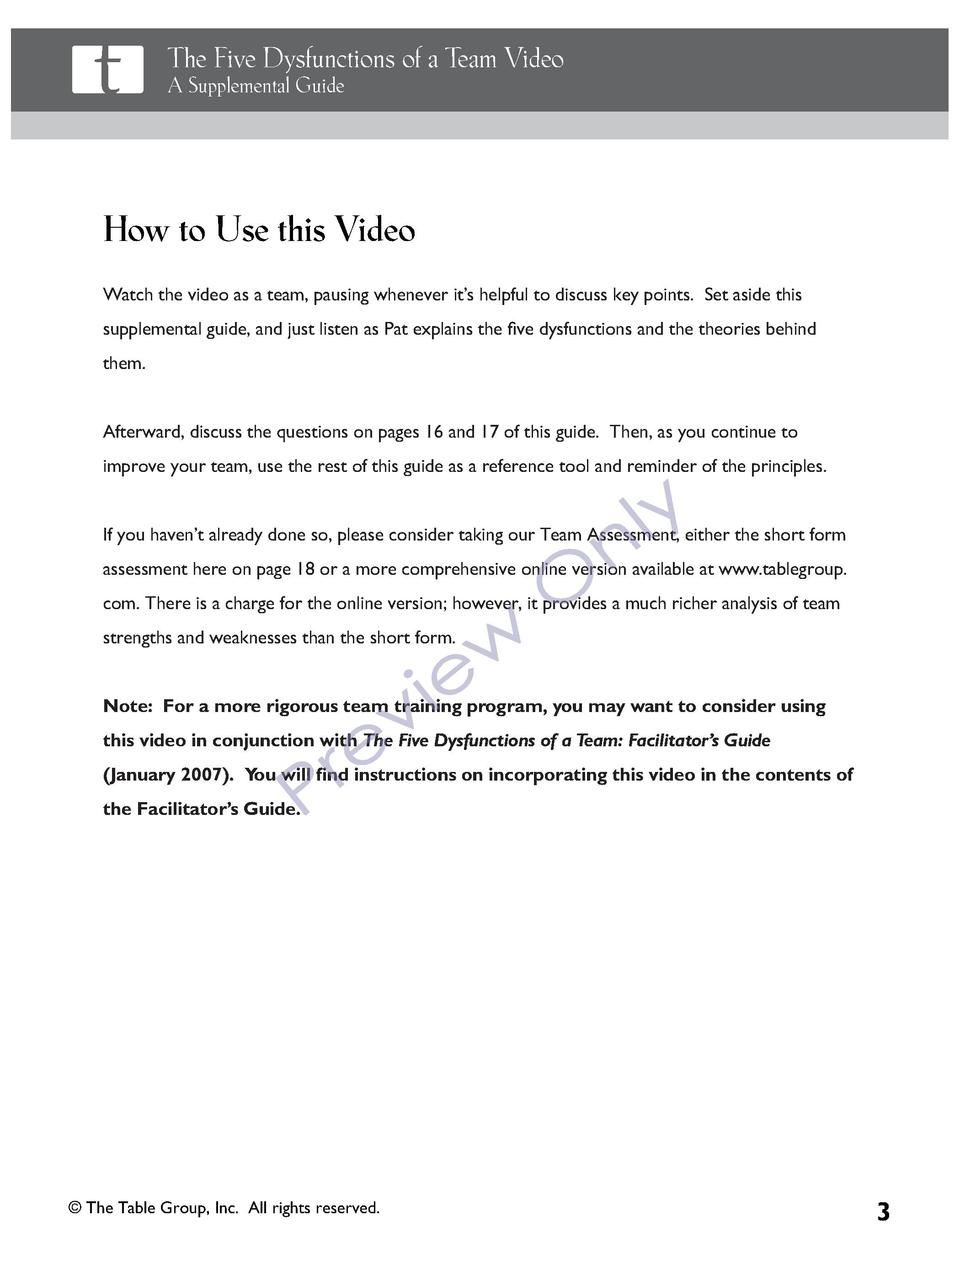 testing testing com the five dysfunctions of a team video a supplemental guide practical solutions for teams how to